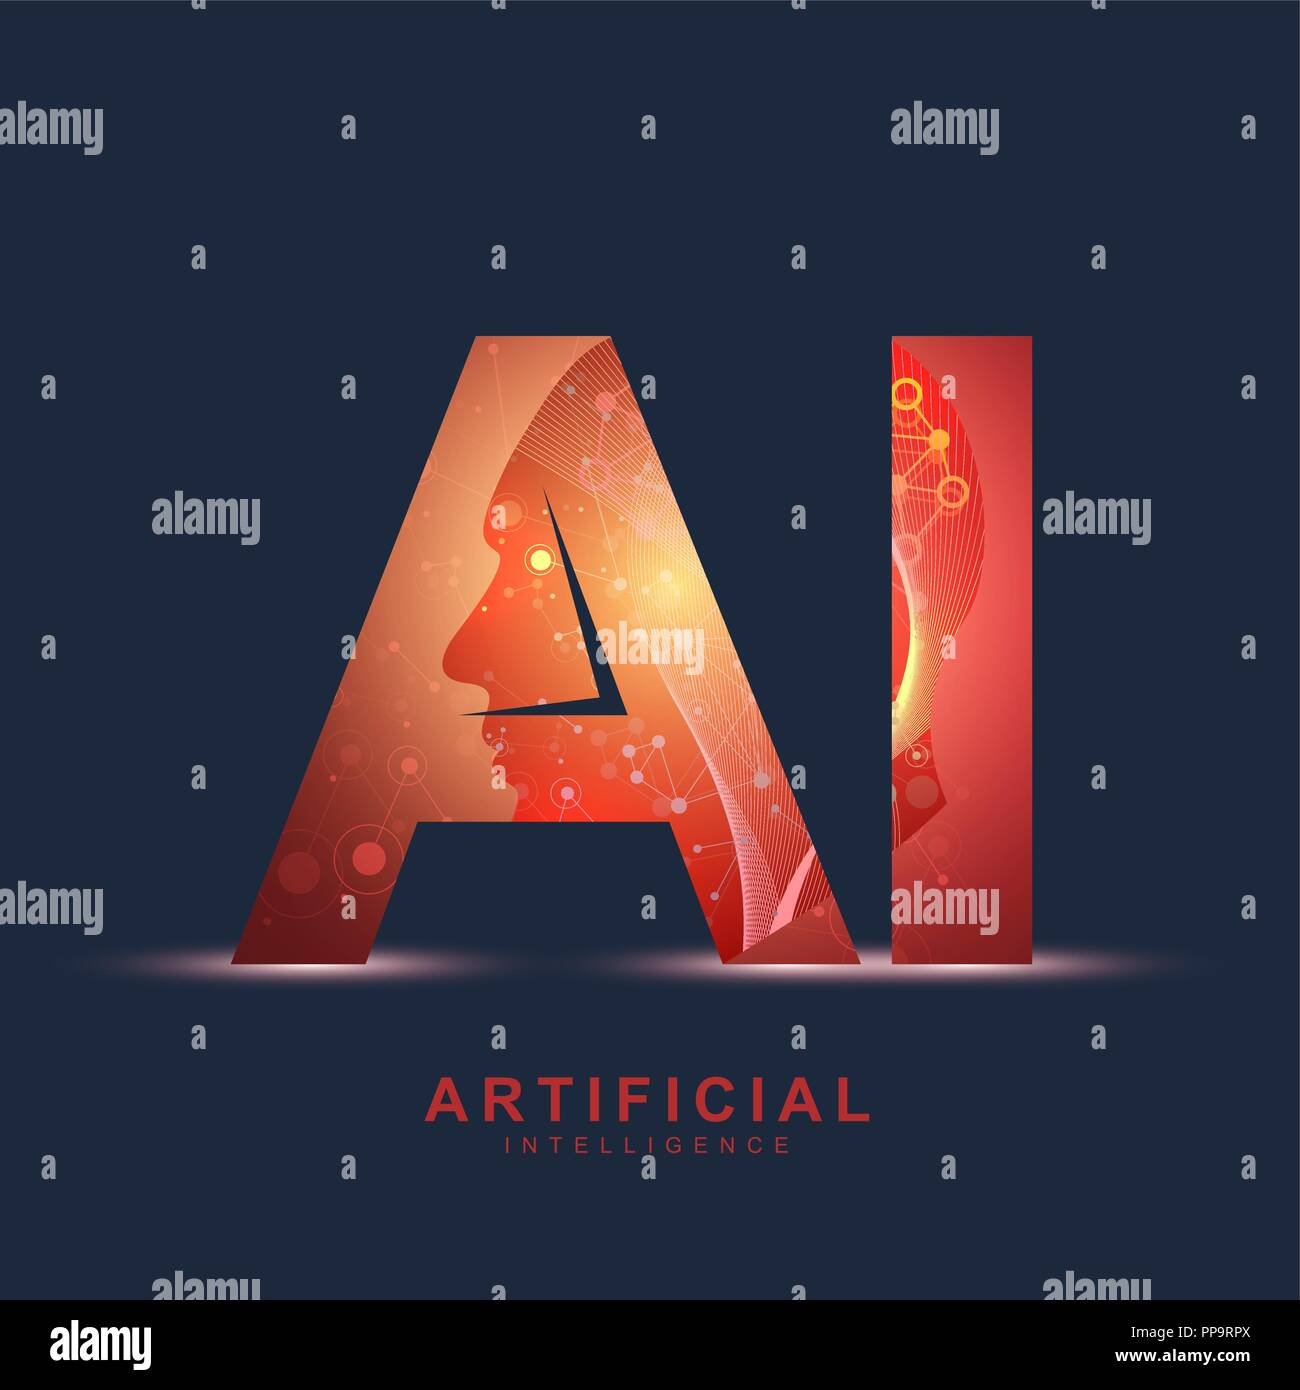 Artificial Intelligence Logo. Artificial Intelligence and Machine Learning Concept. Vector symbol AI. Neural networks and another modern technologies concepts. Technology sci-fi concept - Stock Image